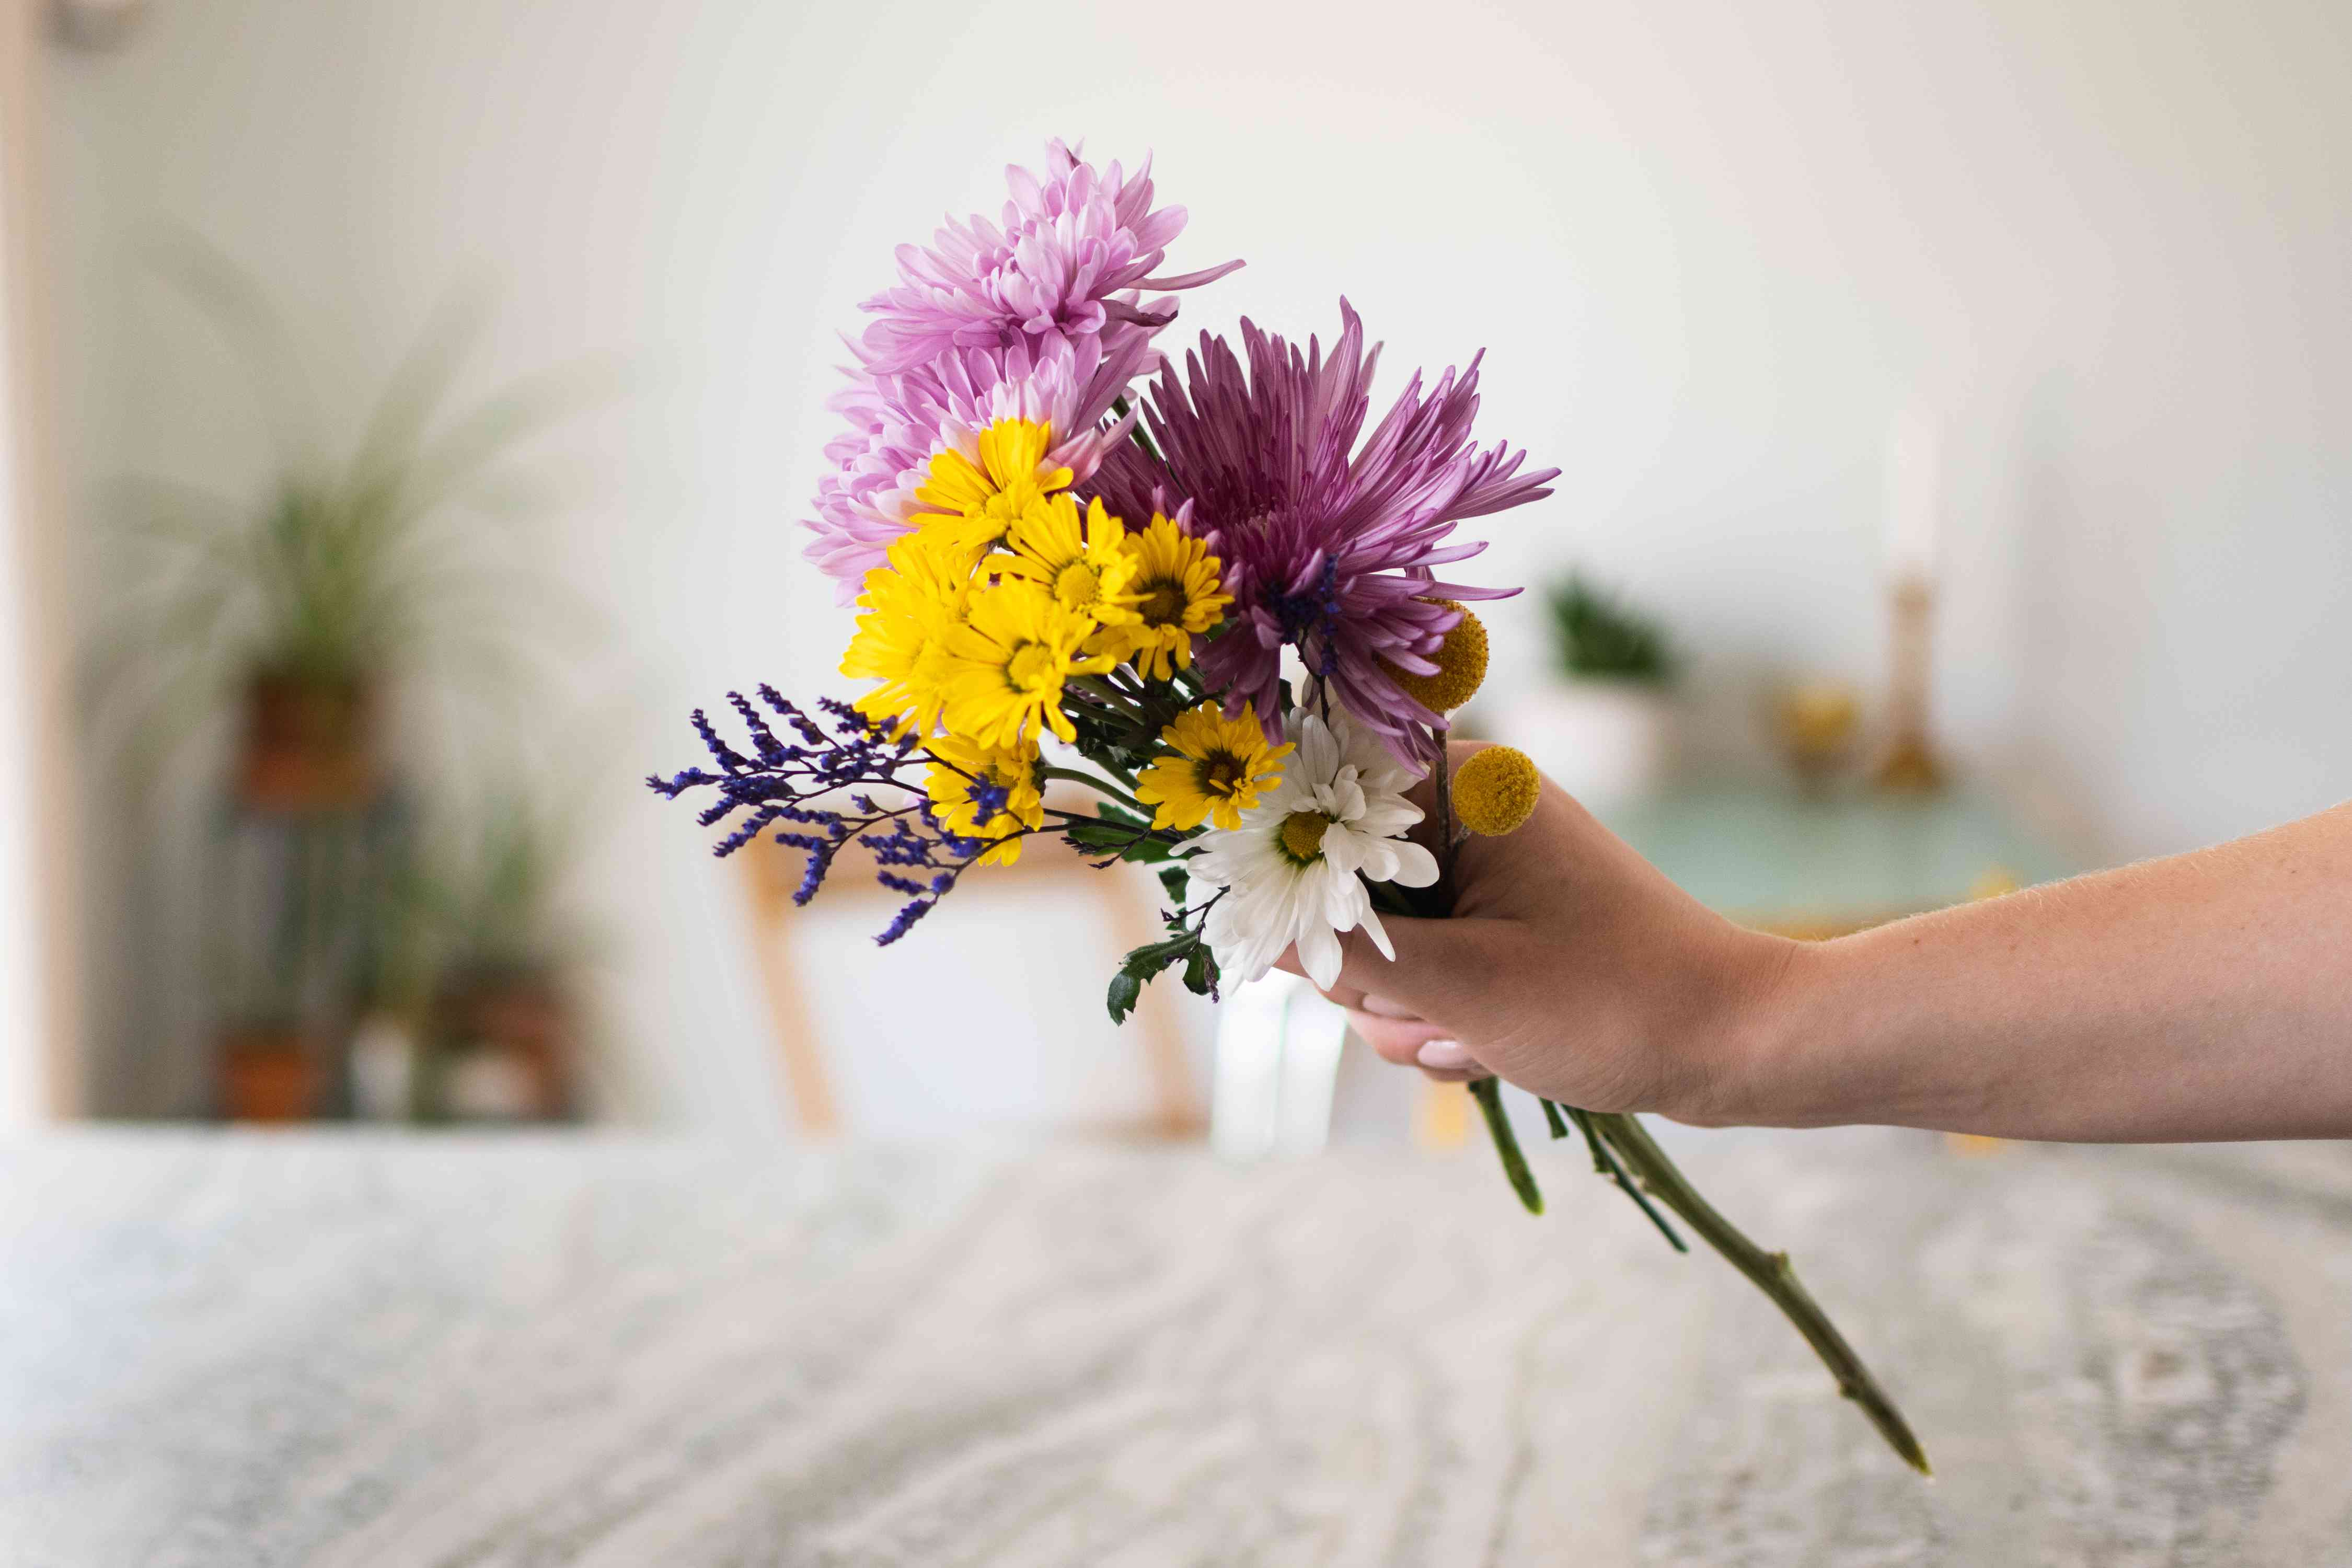 Different flowers bunched together that can be dried wit borax